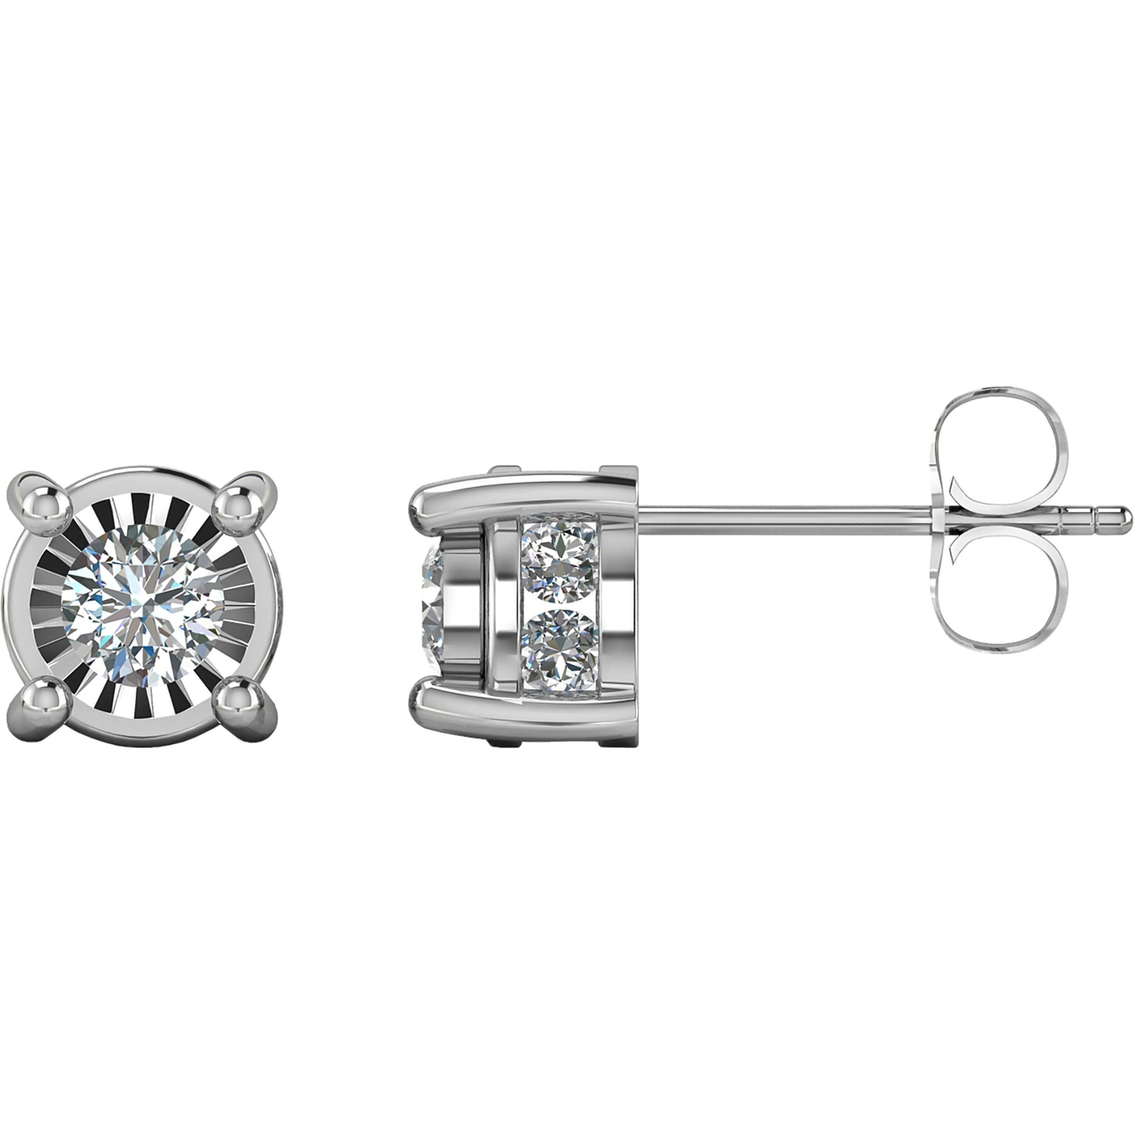 10k White Gold 1 2 Ctw Diamond Stud Earrings